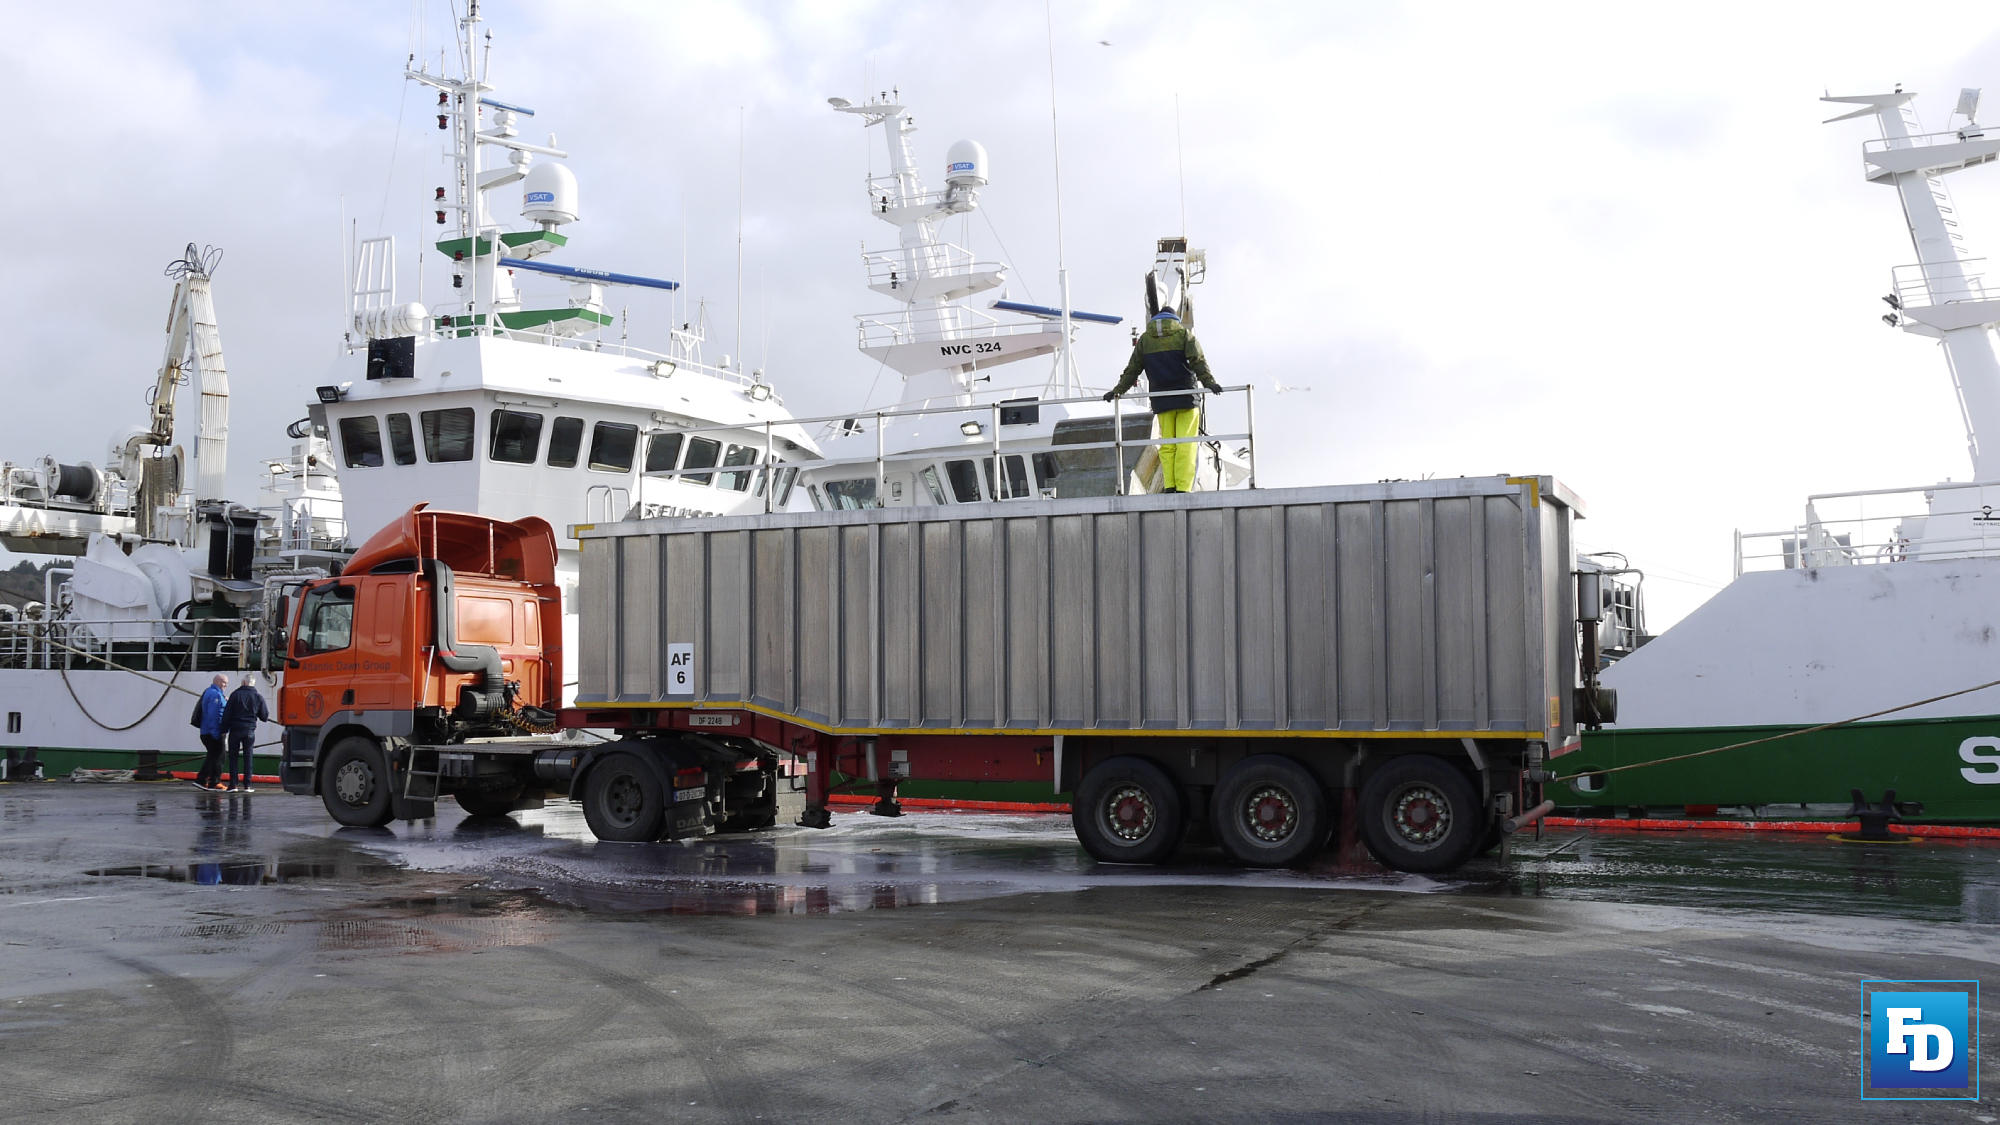 The EU Commission has said that it is not in a position to comment on Administrative Inquiry in relation to the Irish fishing industry